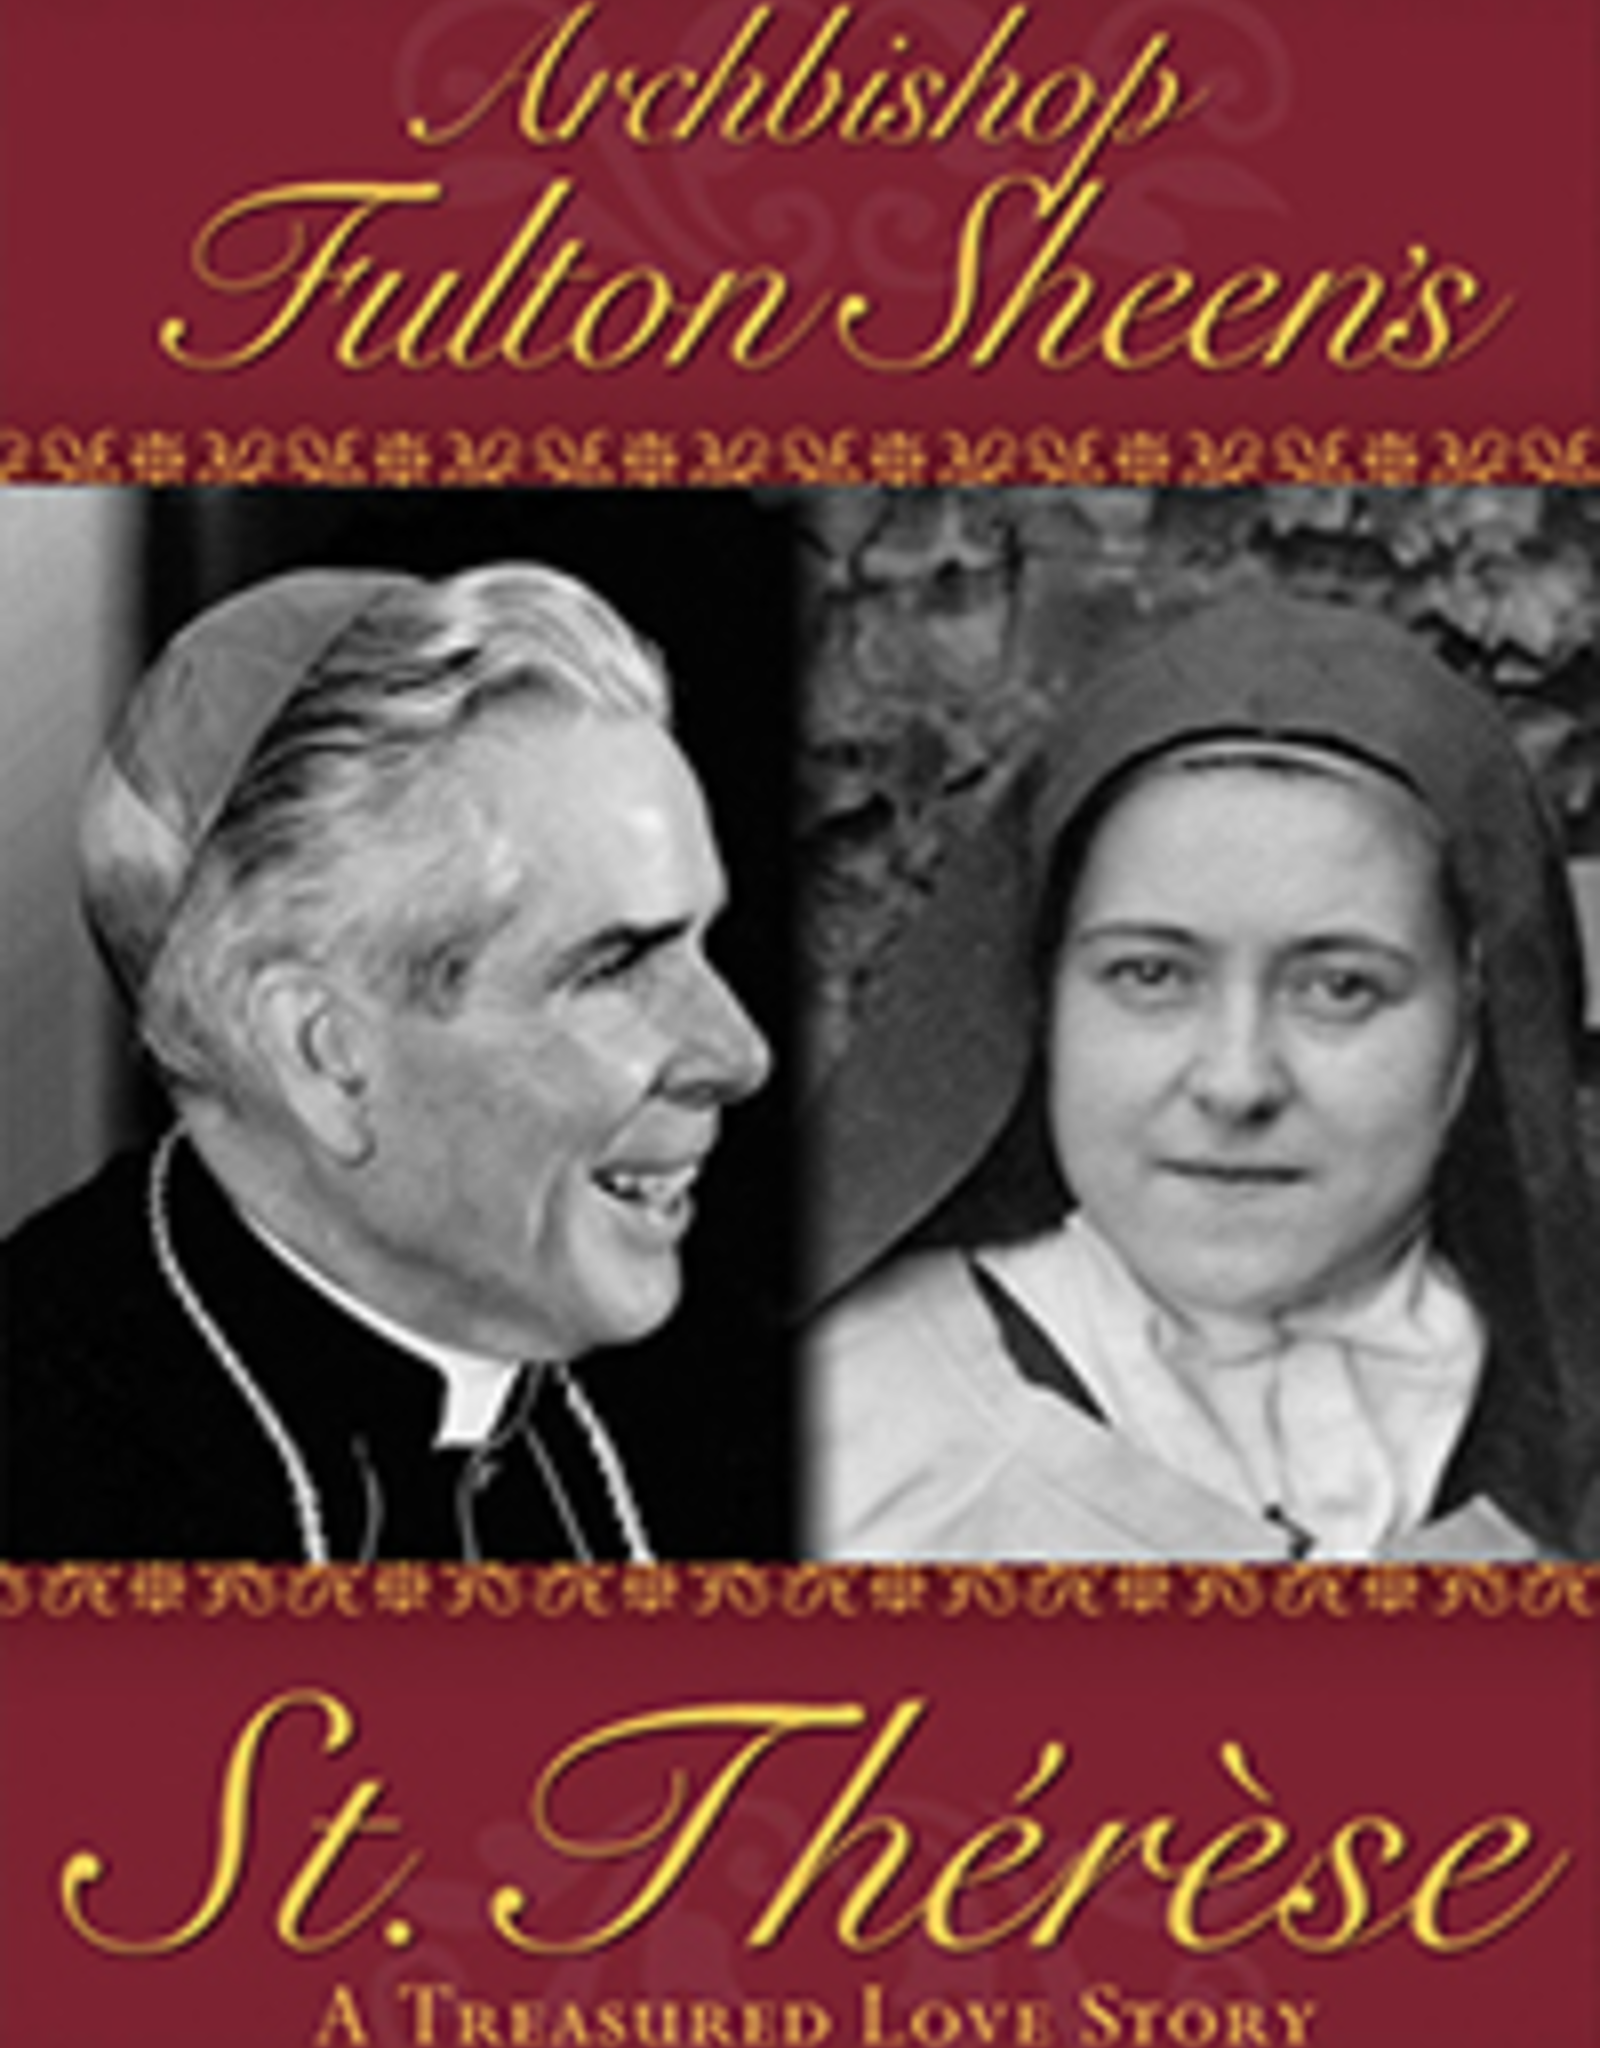 Catholic Word Publisher Group Archbishop Fulton Sheen's St. Therese-- A Treasured Love Story, by Fulton Sheen (hardcover)